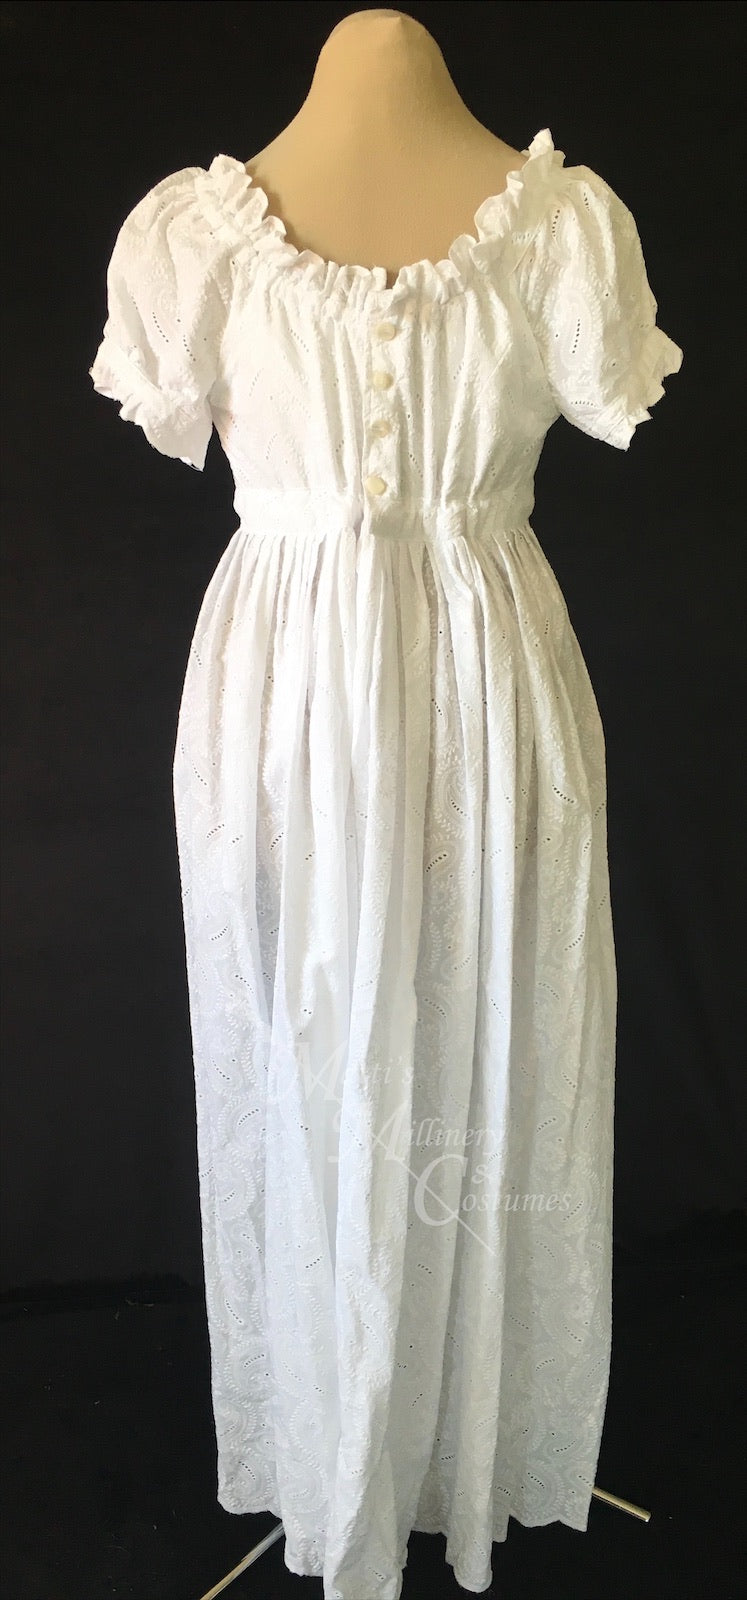 White Elegant Eyelet Cotton Regency Jane Austen Day Dress Gown